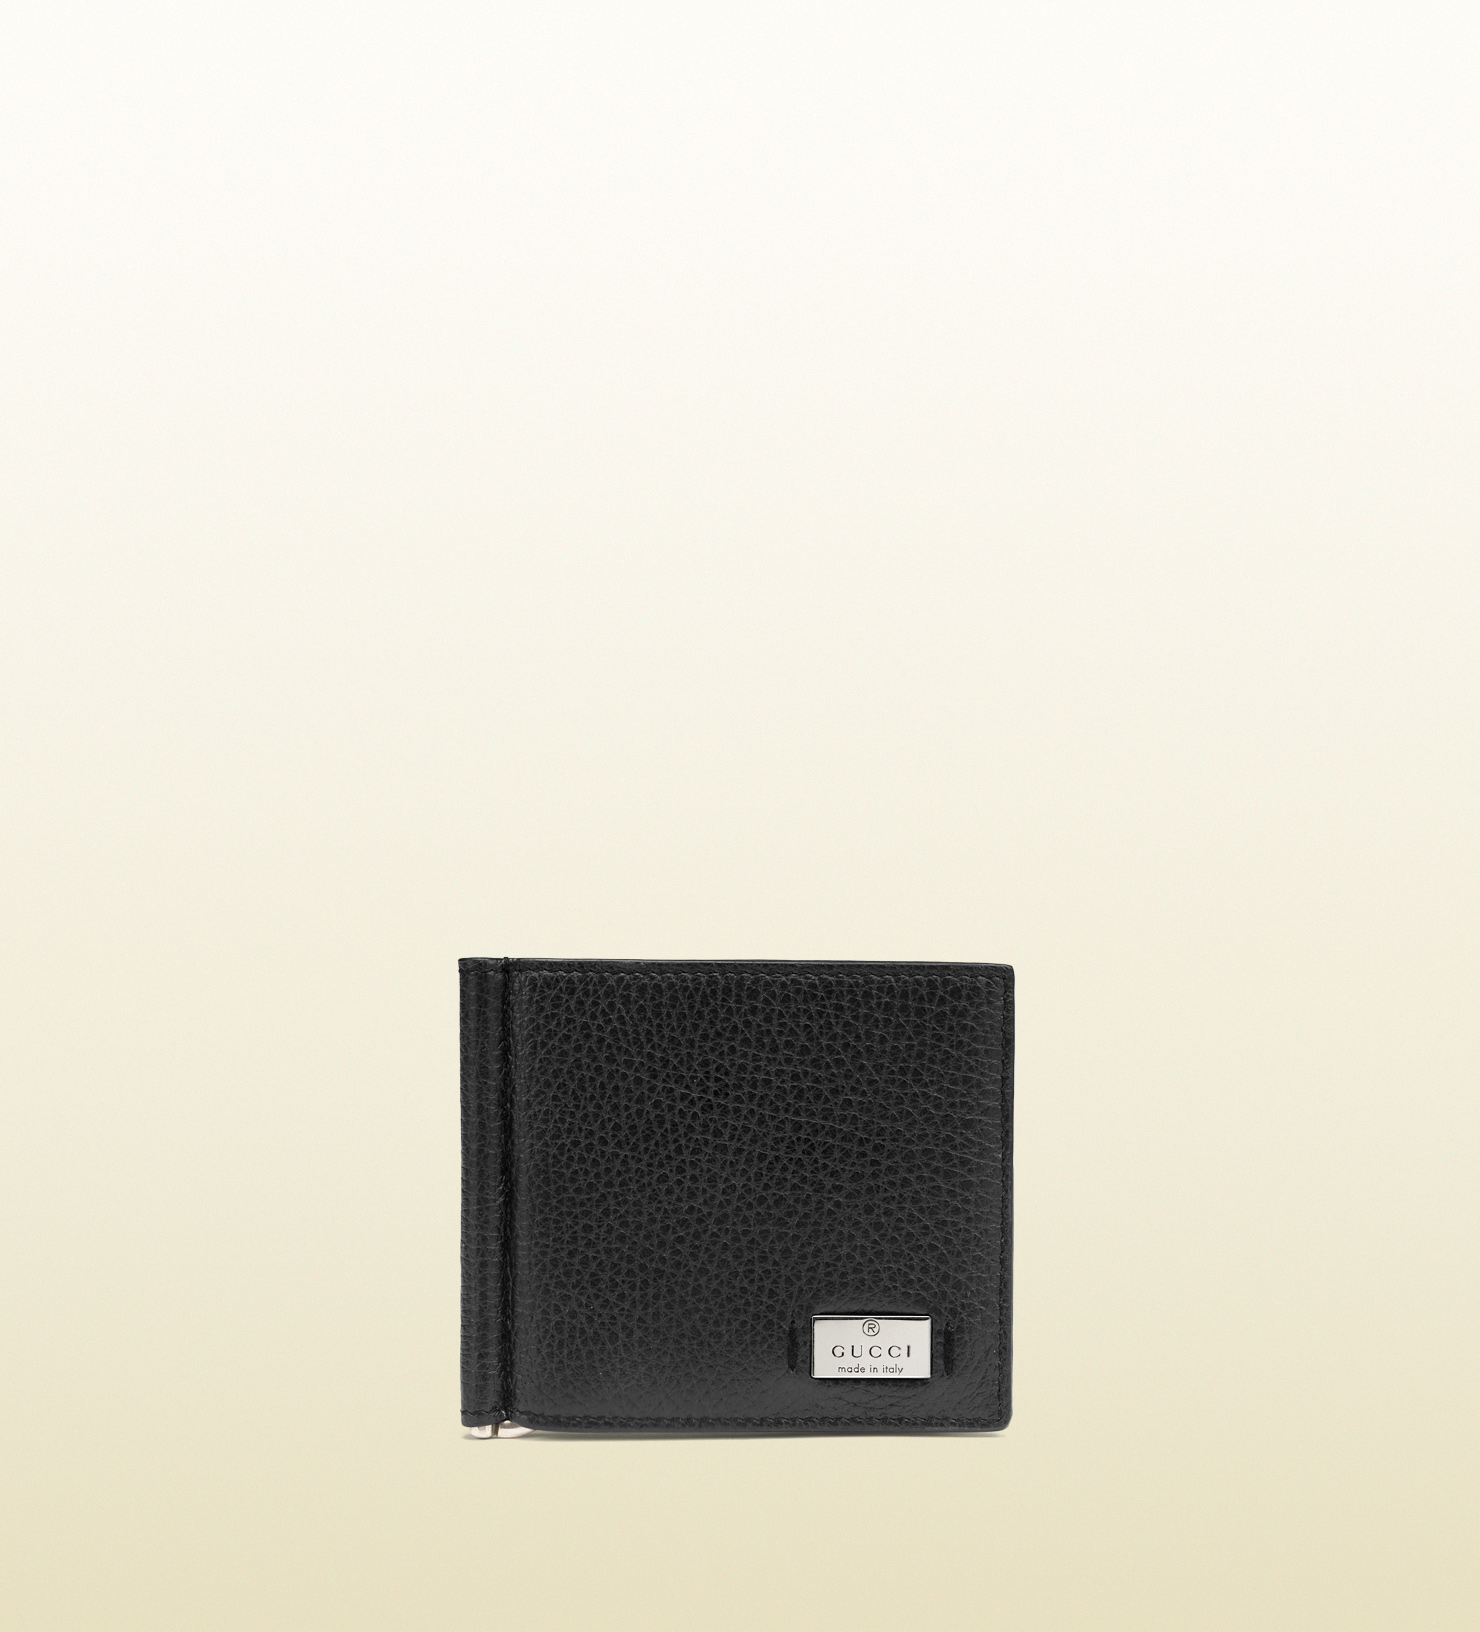 81d6ddc437d Lyst - Gucci Metal Tag Leather Money Clip Wallet in Black for Men